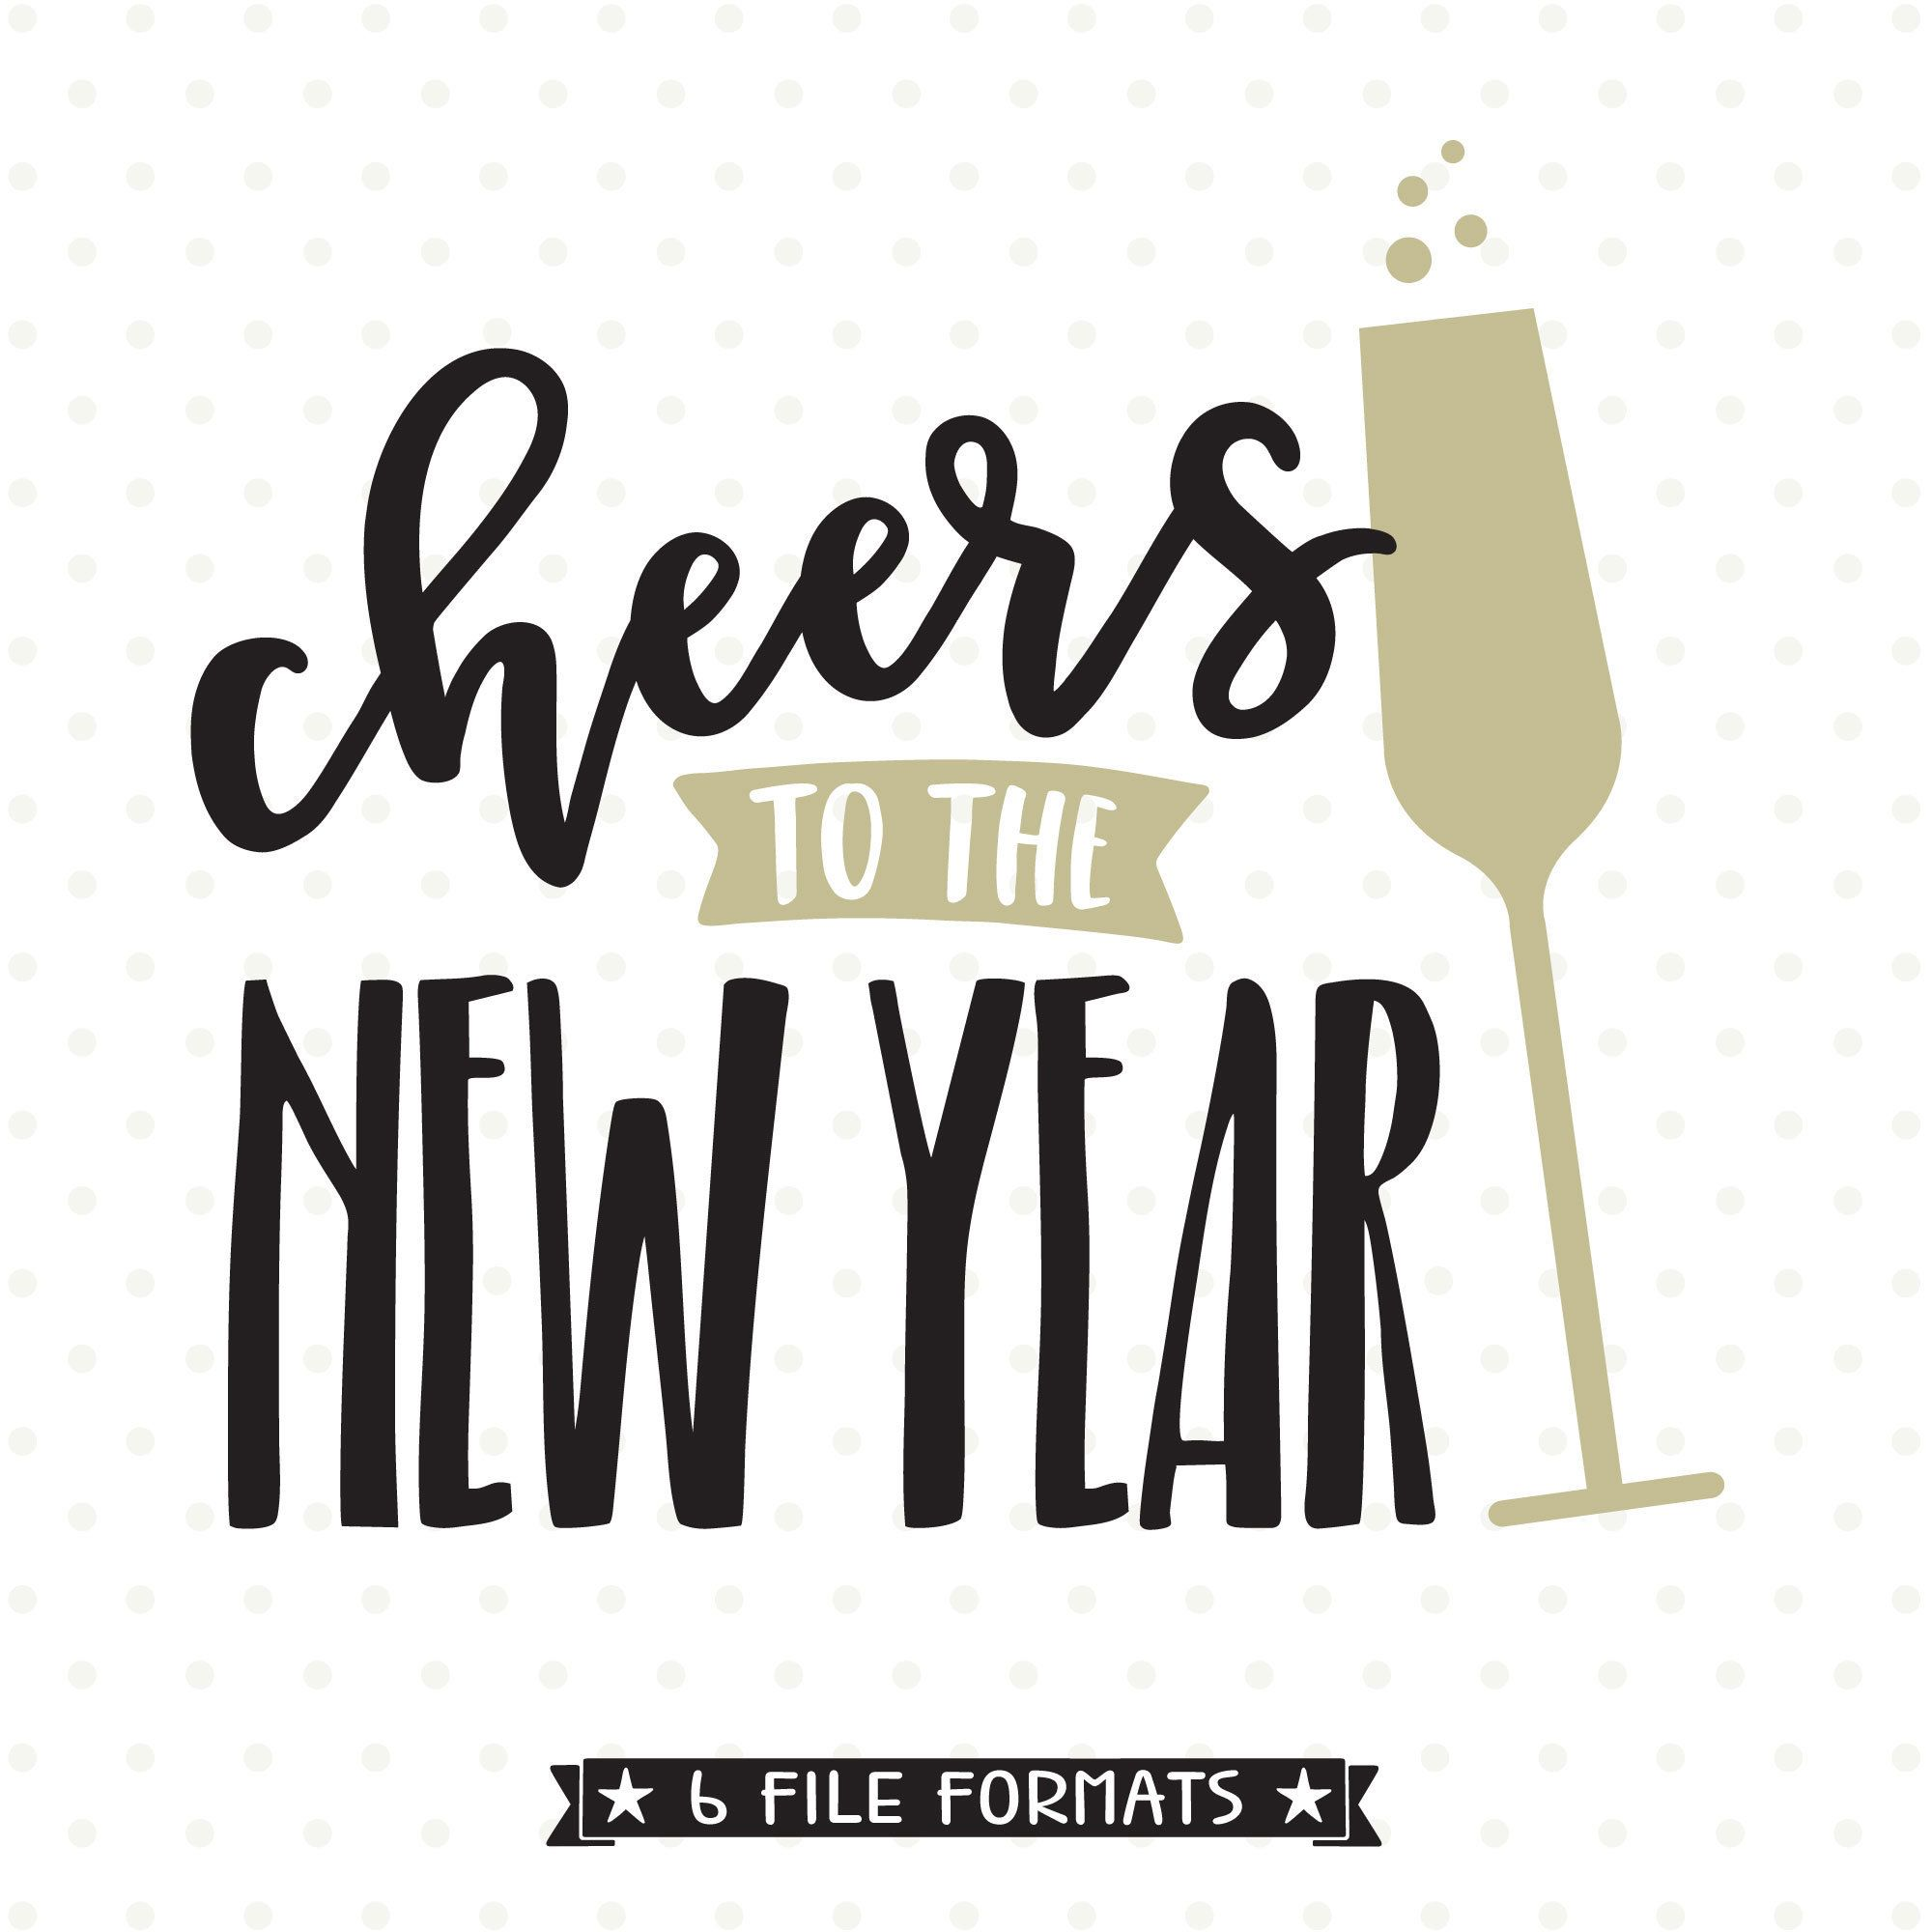 Get New Years Svg Cutting File, Pop Fizz Clink Svg, Cricut Cut File, Holiday Svg, Silhouette Cut File PNG